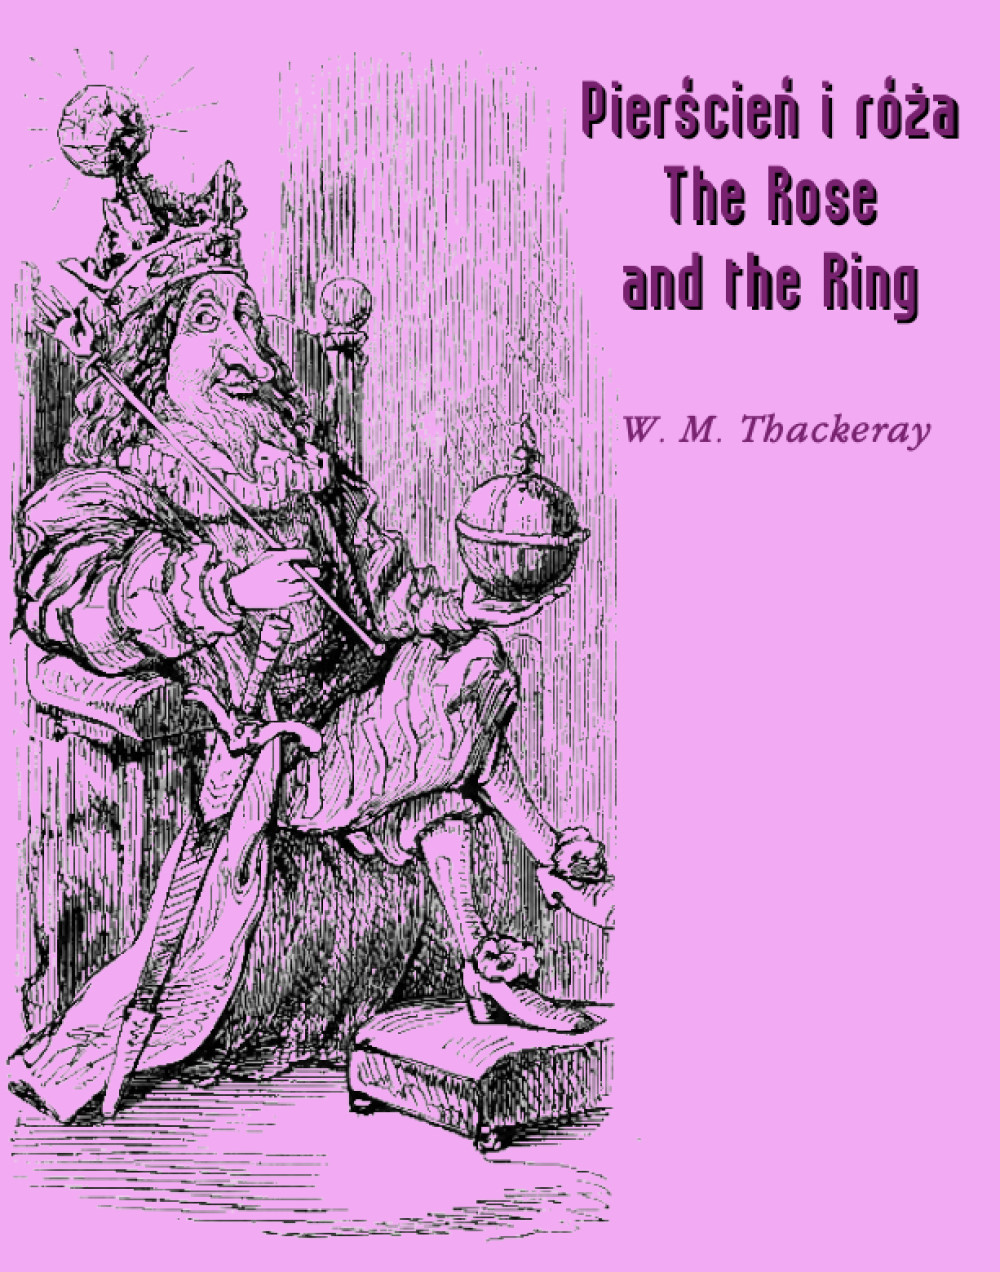 Pierścień i róża czyli historia Lulejki i Bulby. Pantomima przy kominku dla dużych i małych dzieci. The Rose and the Ring or The History of Prince Giglio and Prince Bulbo. A Fireside Pantomime for Great and Small Children ebook